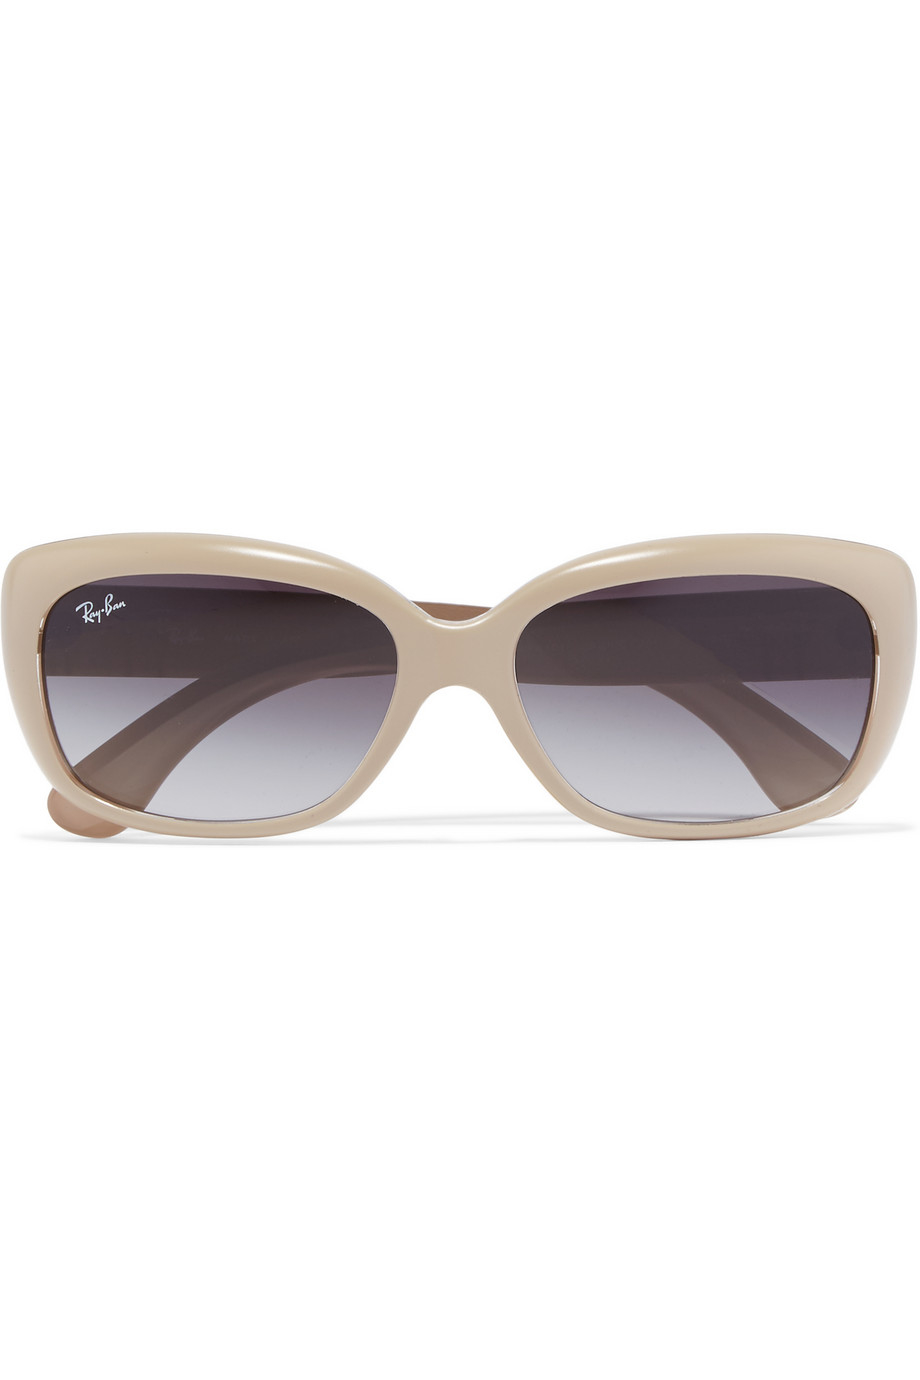 Ray-Ban Square-frame Acetate Sunglasses in Natural - Lyst